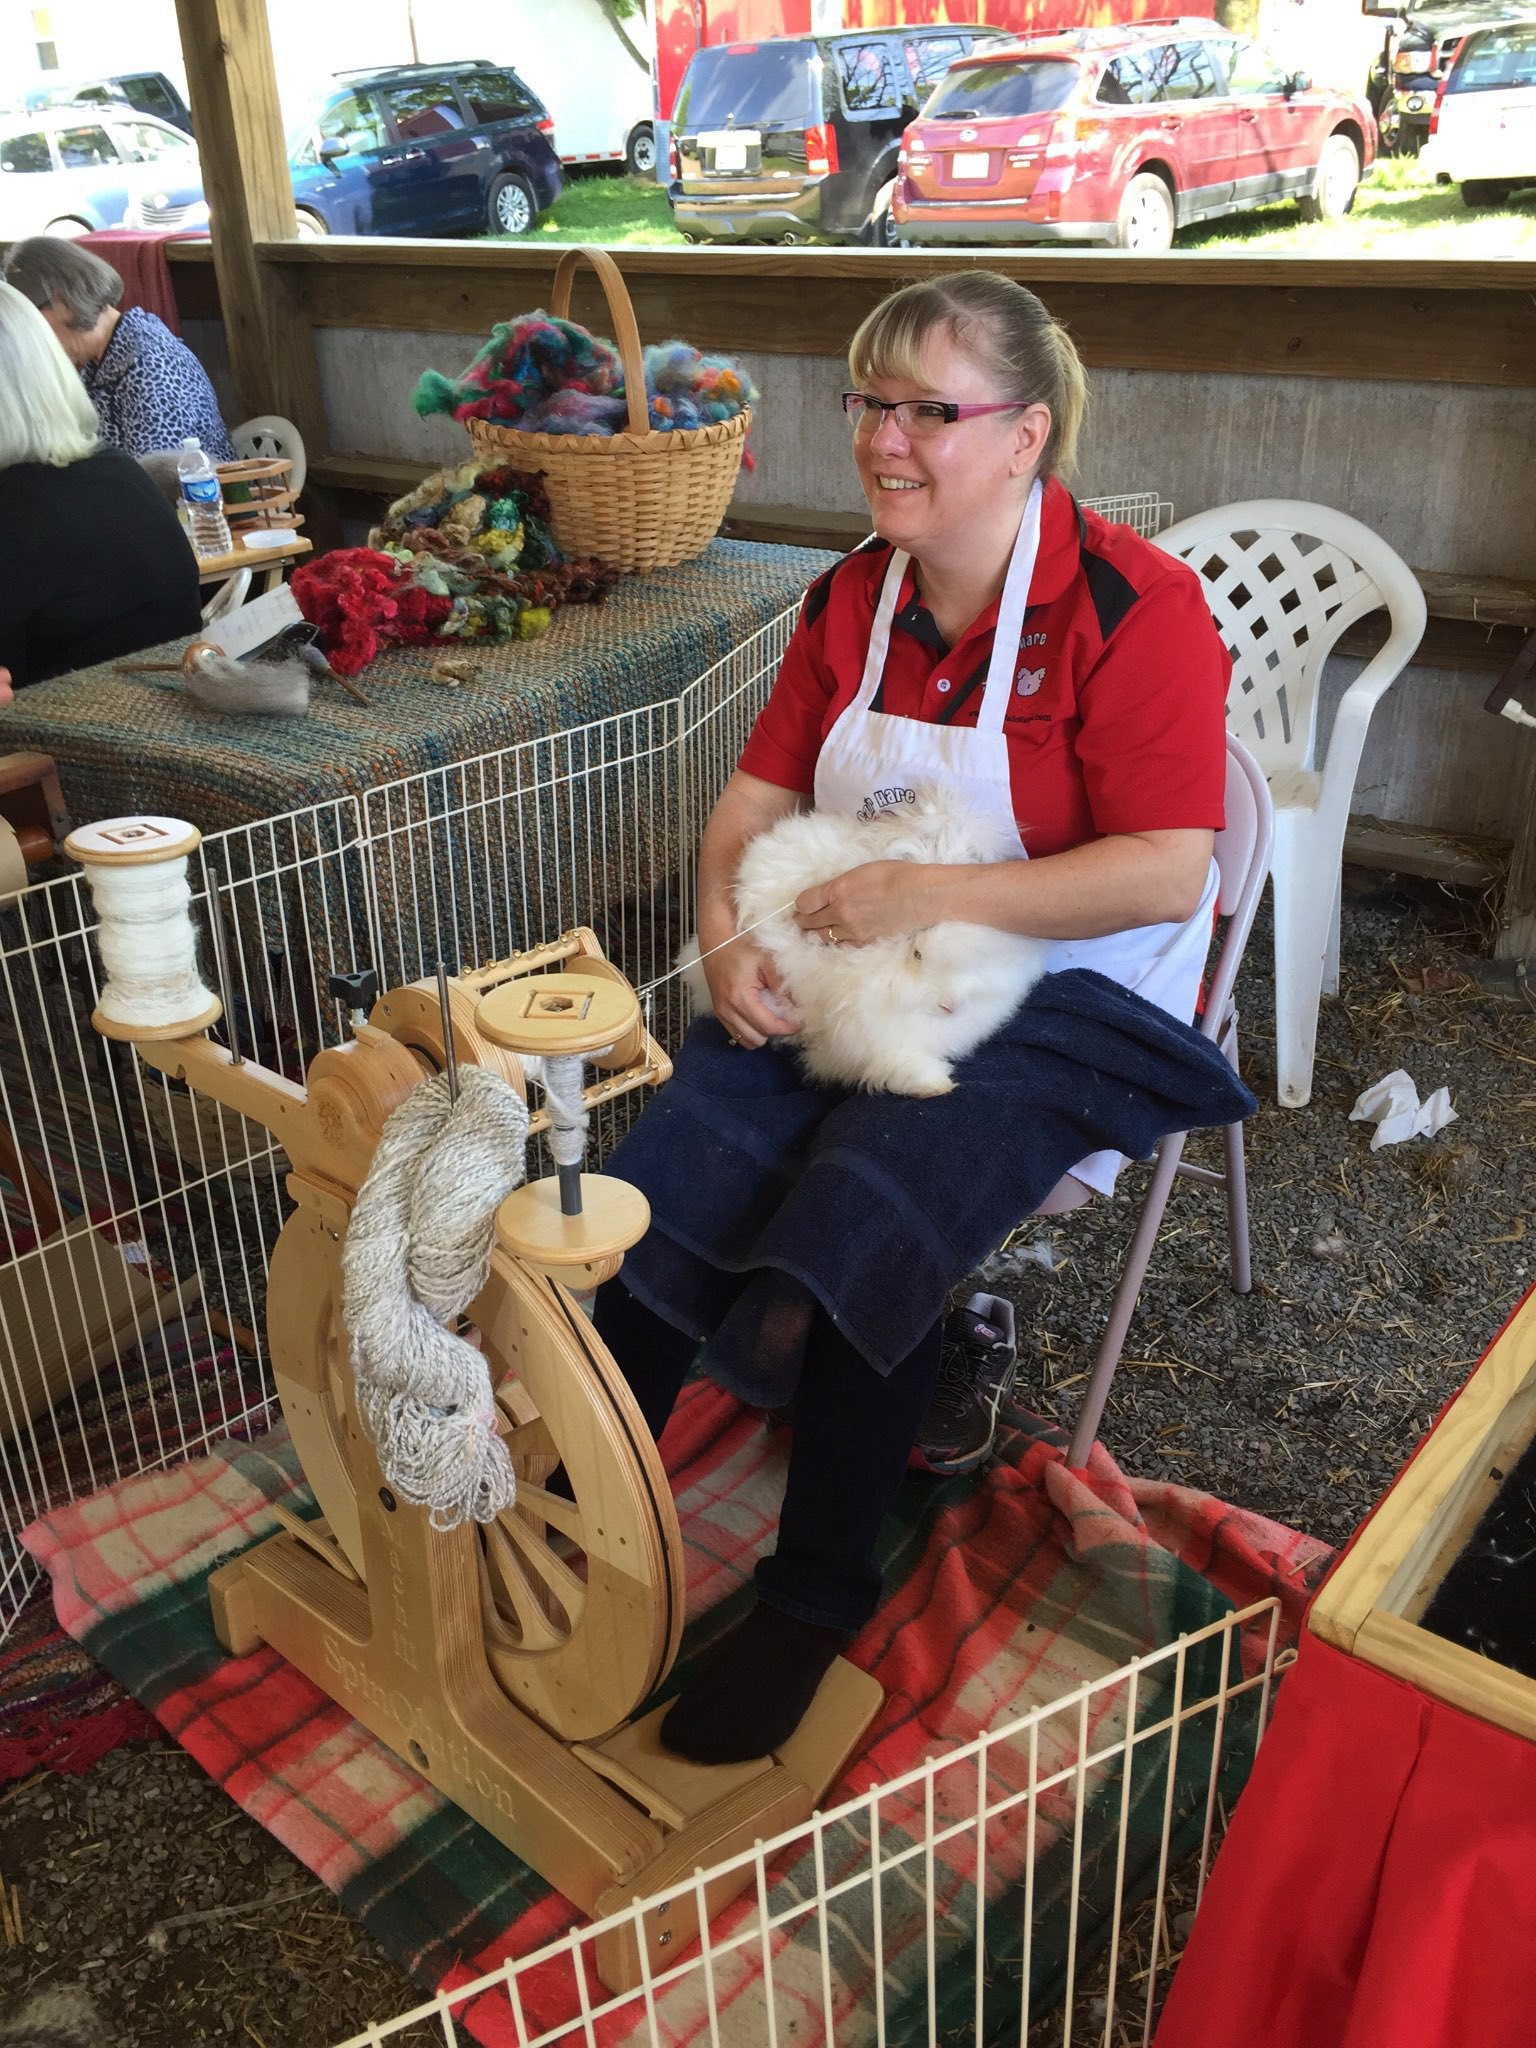 Women spinning yarn straight from an angora rabbit.